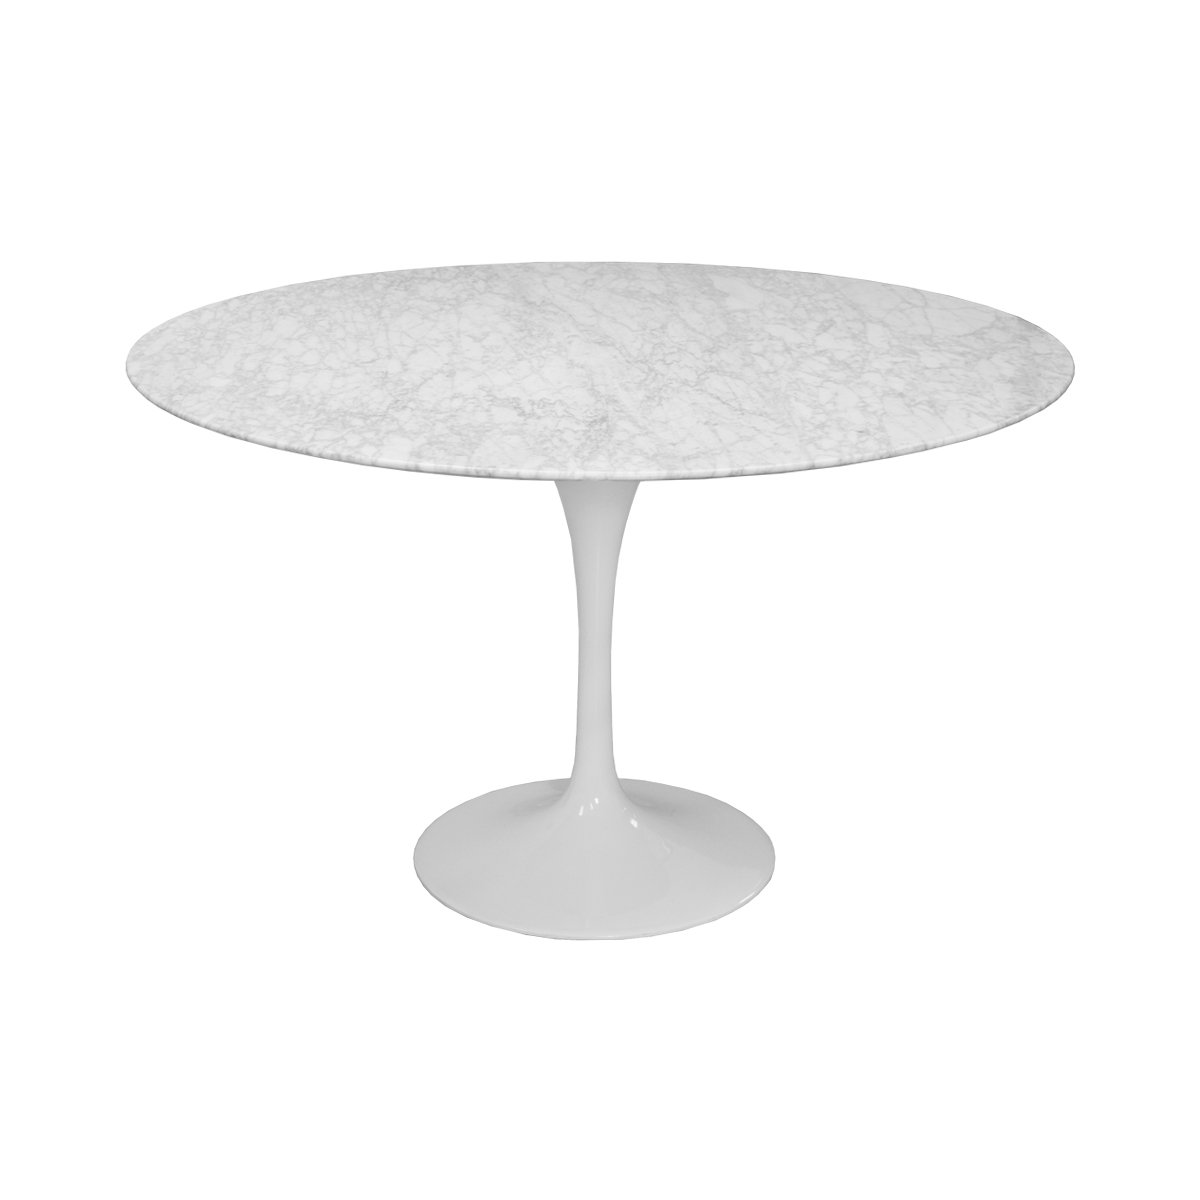 Mod Made Mid Century Modern Lily Natural Marble Round Table Dining Table Meeting Table, 47-Inch, White